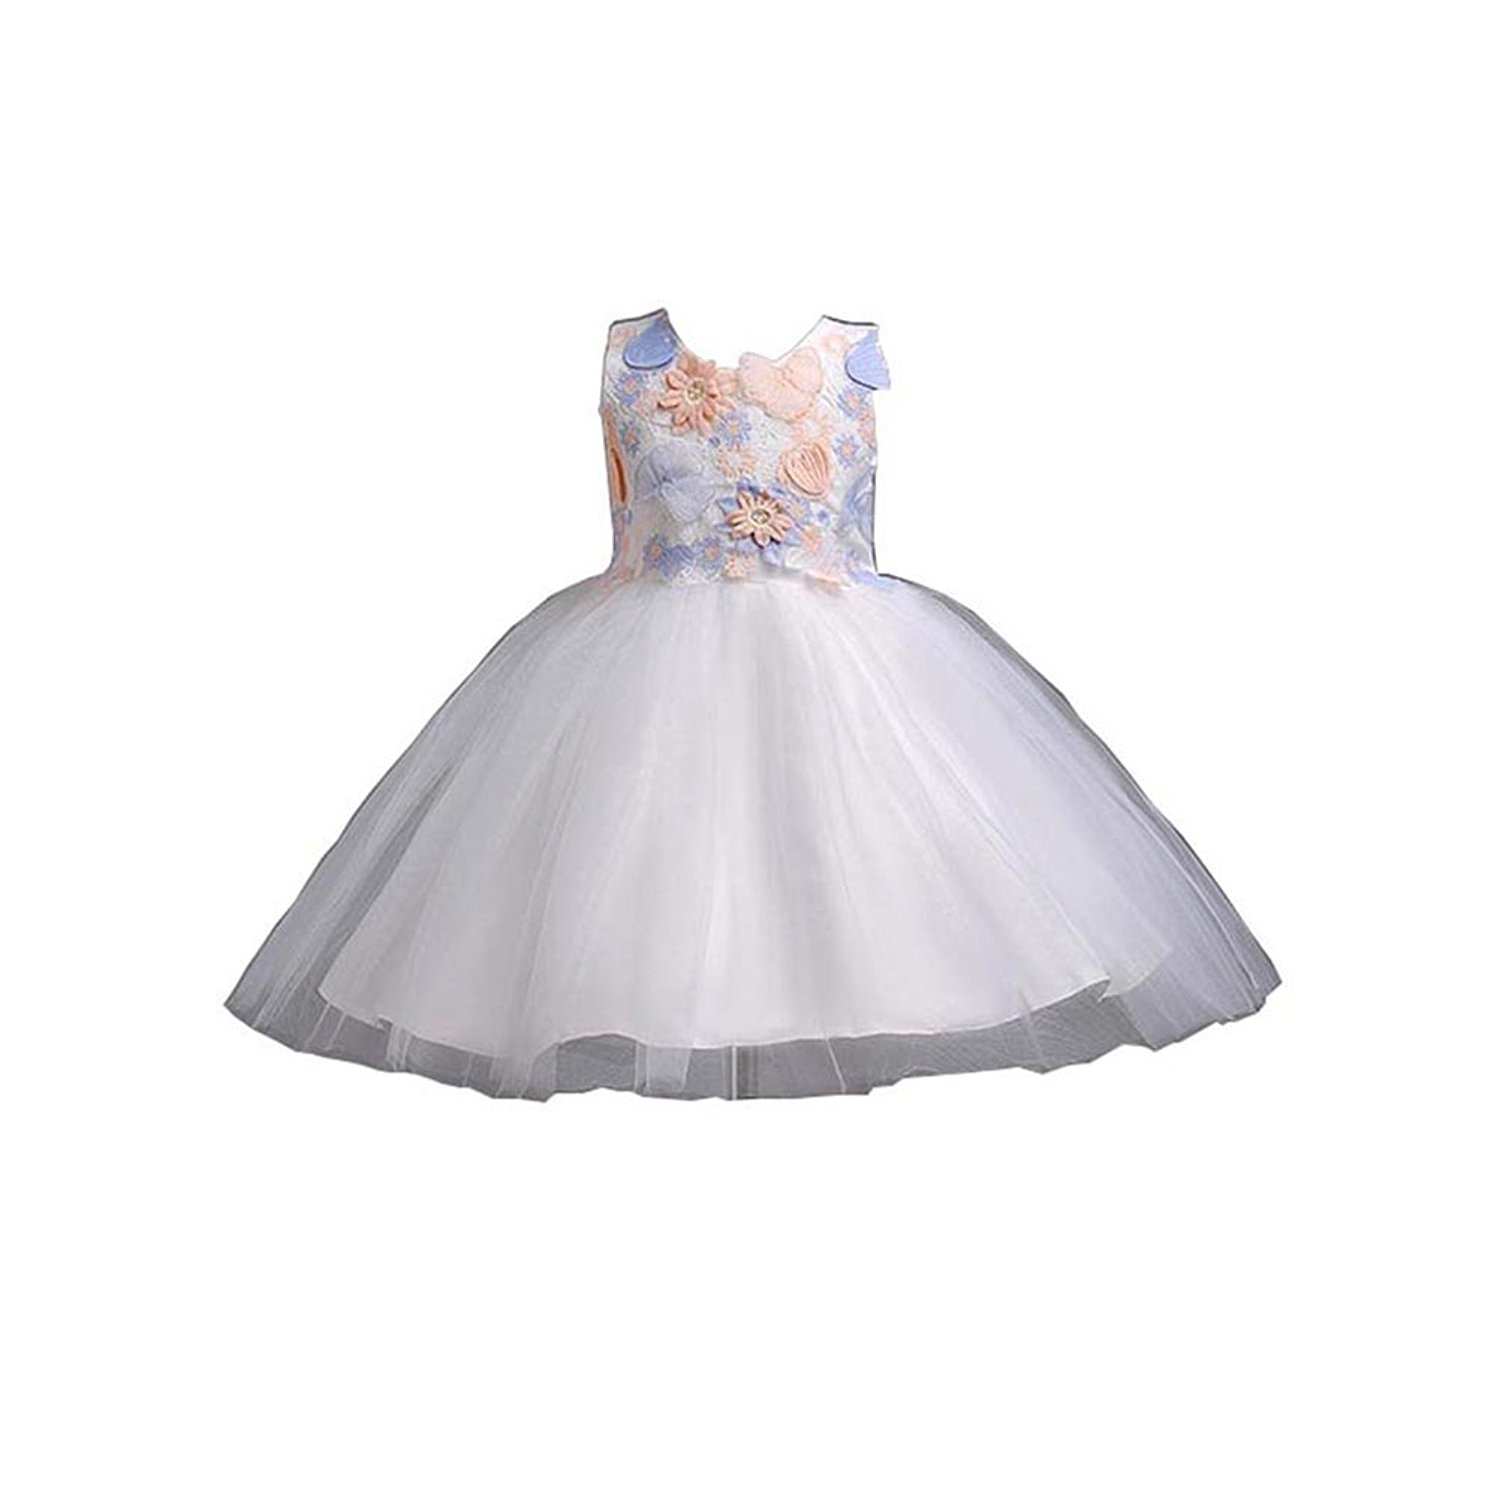 Cheap Tutu Flower Girl Dress Find Tutu Flower Girl Dress Deals On